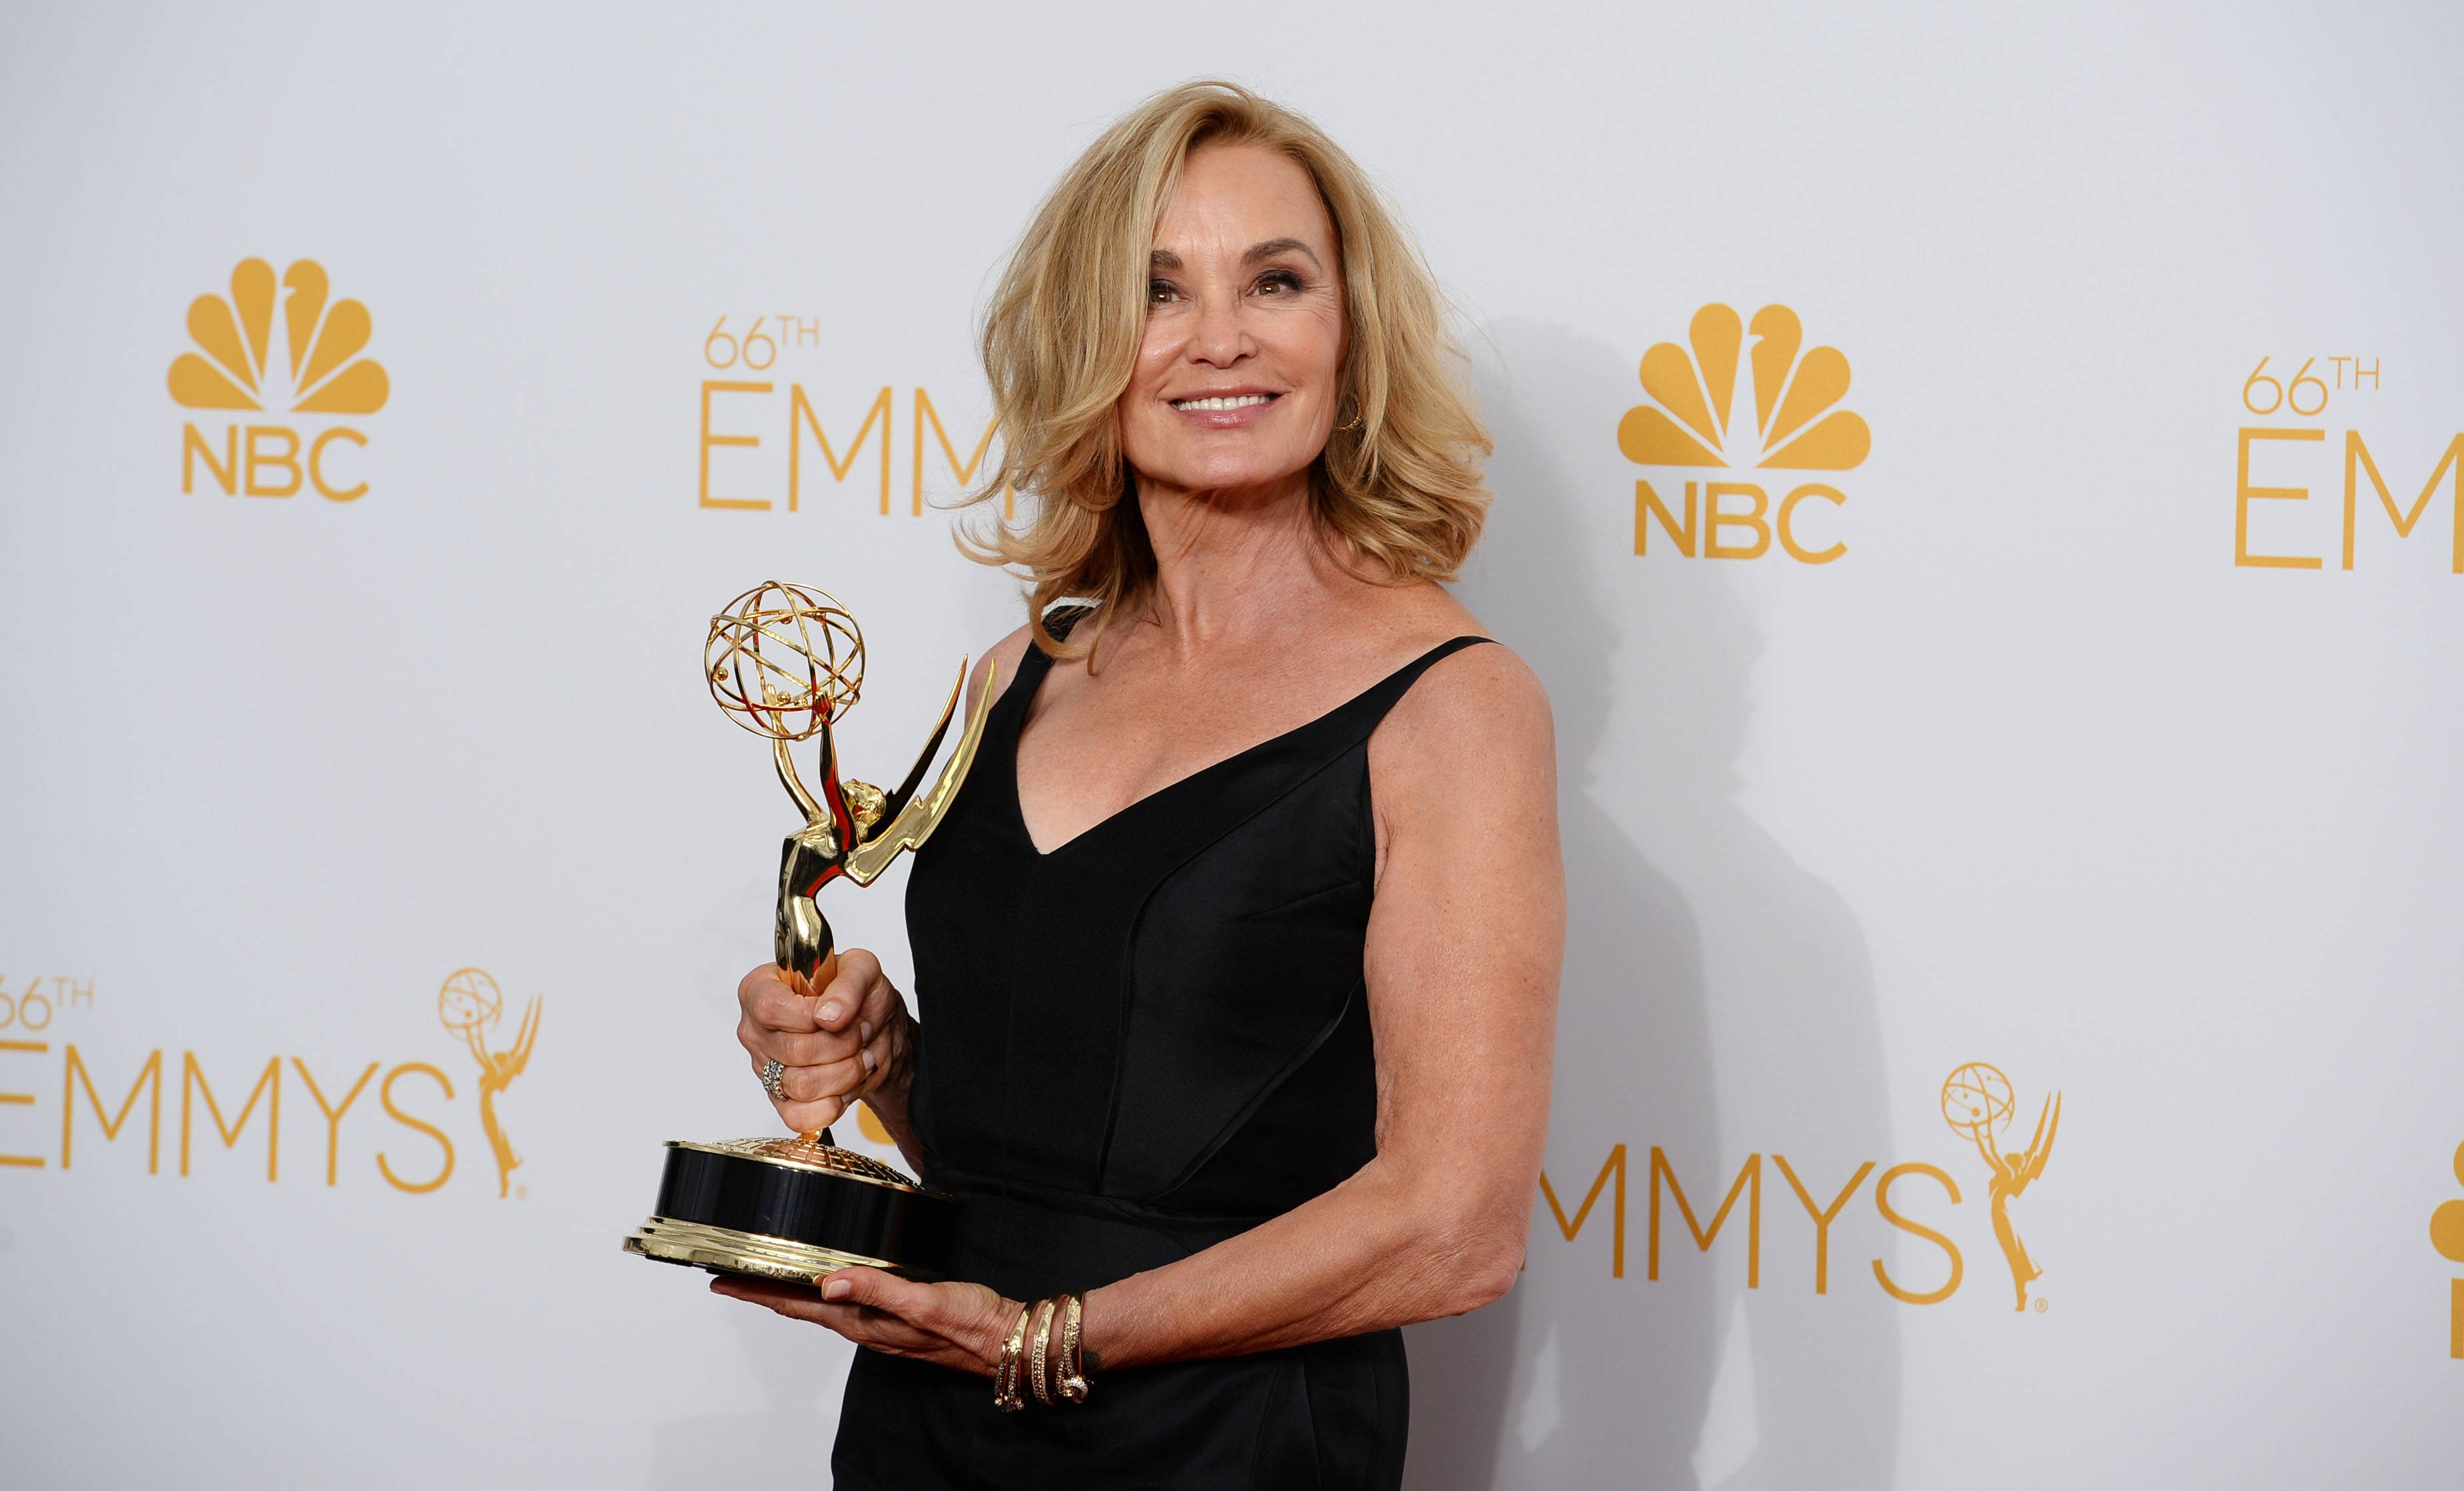 Jessica Lange poses in the press room at the 66th Annual Primetime Emmy Awards at the Nokia Theatre in Los Angeles.